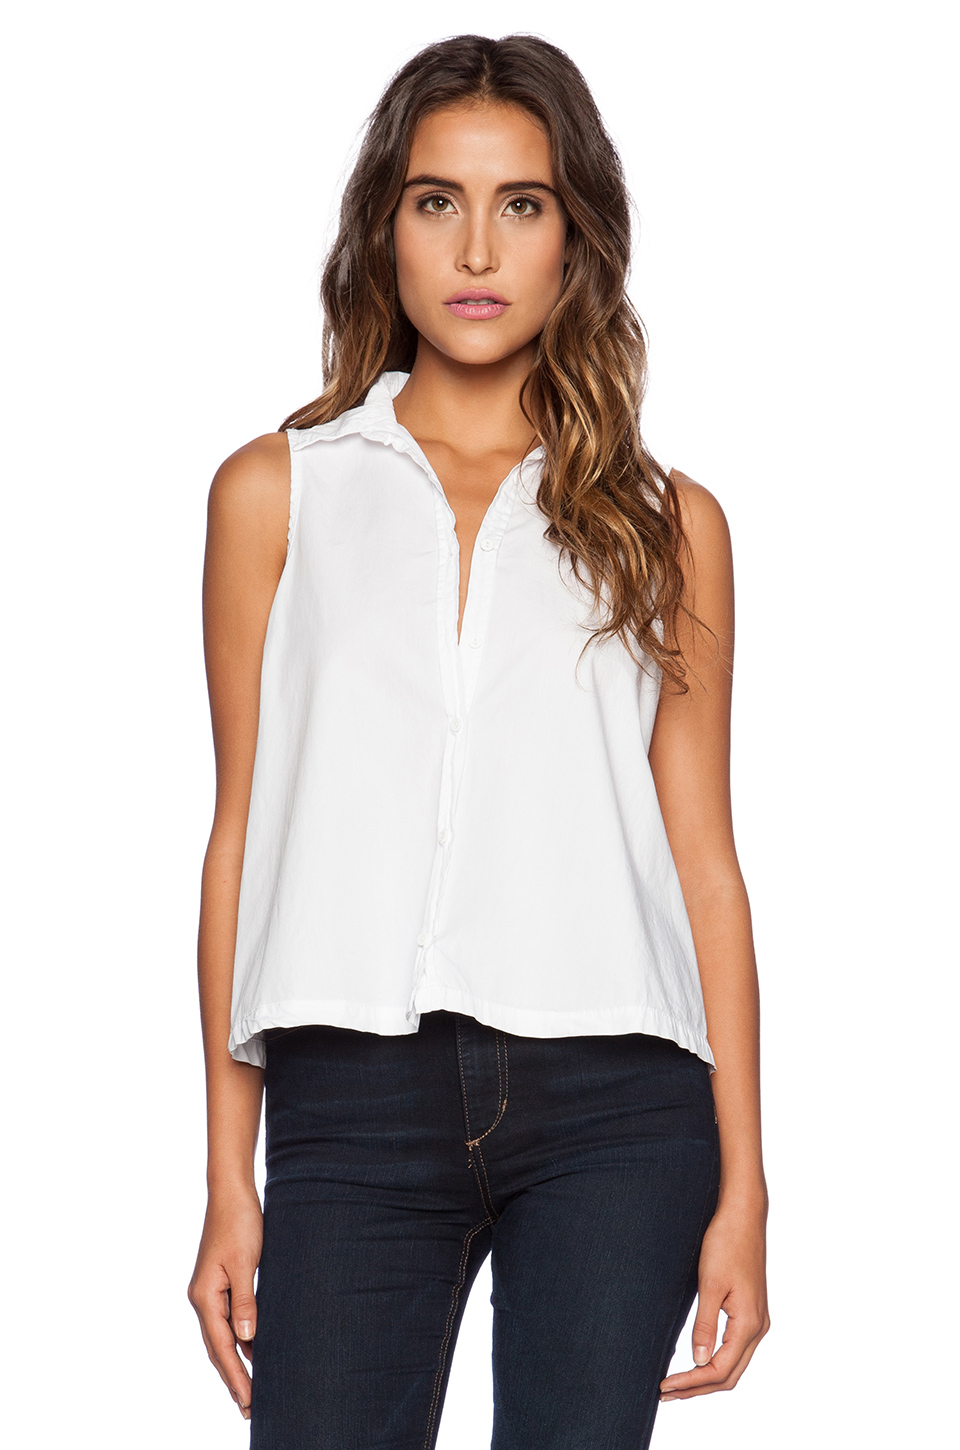 Sleeveless Button Up Shirts. invalid category id. Sleeveless Button Up Shirts. Showing 26 of 26 results that match your query. Product - Andrew Fezza Men's Flex Collar Slim Fit French Cuff Solid Dress Shirt - White - 17 Product Image. Price $ Product Title. Andrew Fezza Men's Flex Collar Slim Fit French Cuff Solid Dress Shirt.